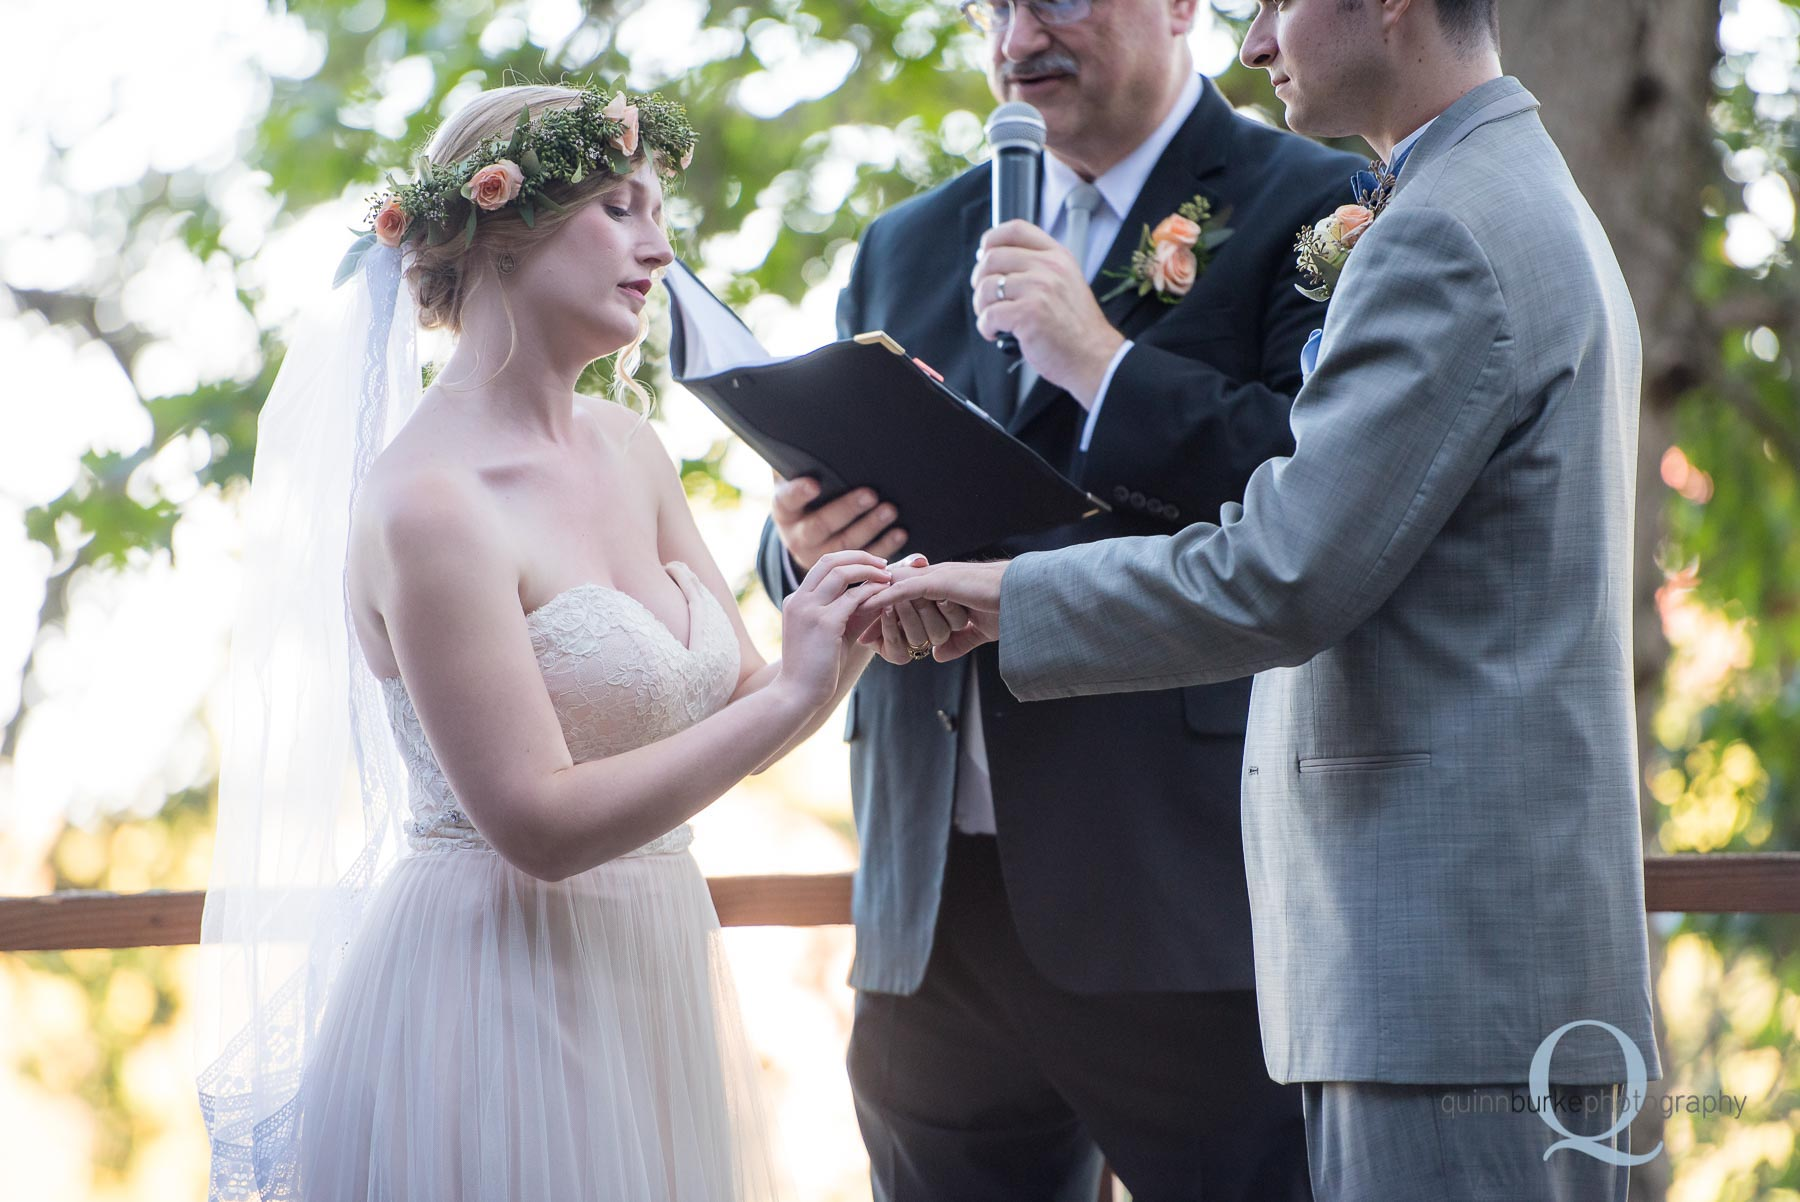 bride placing ring on grooms finger at Perryhill Farm oregon